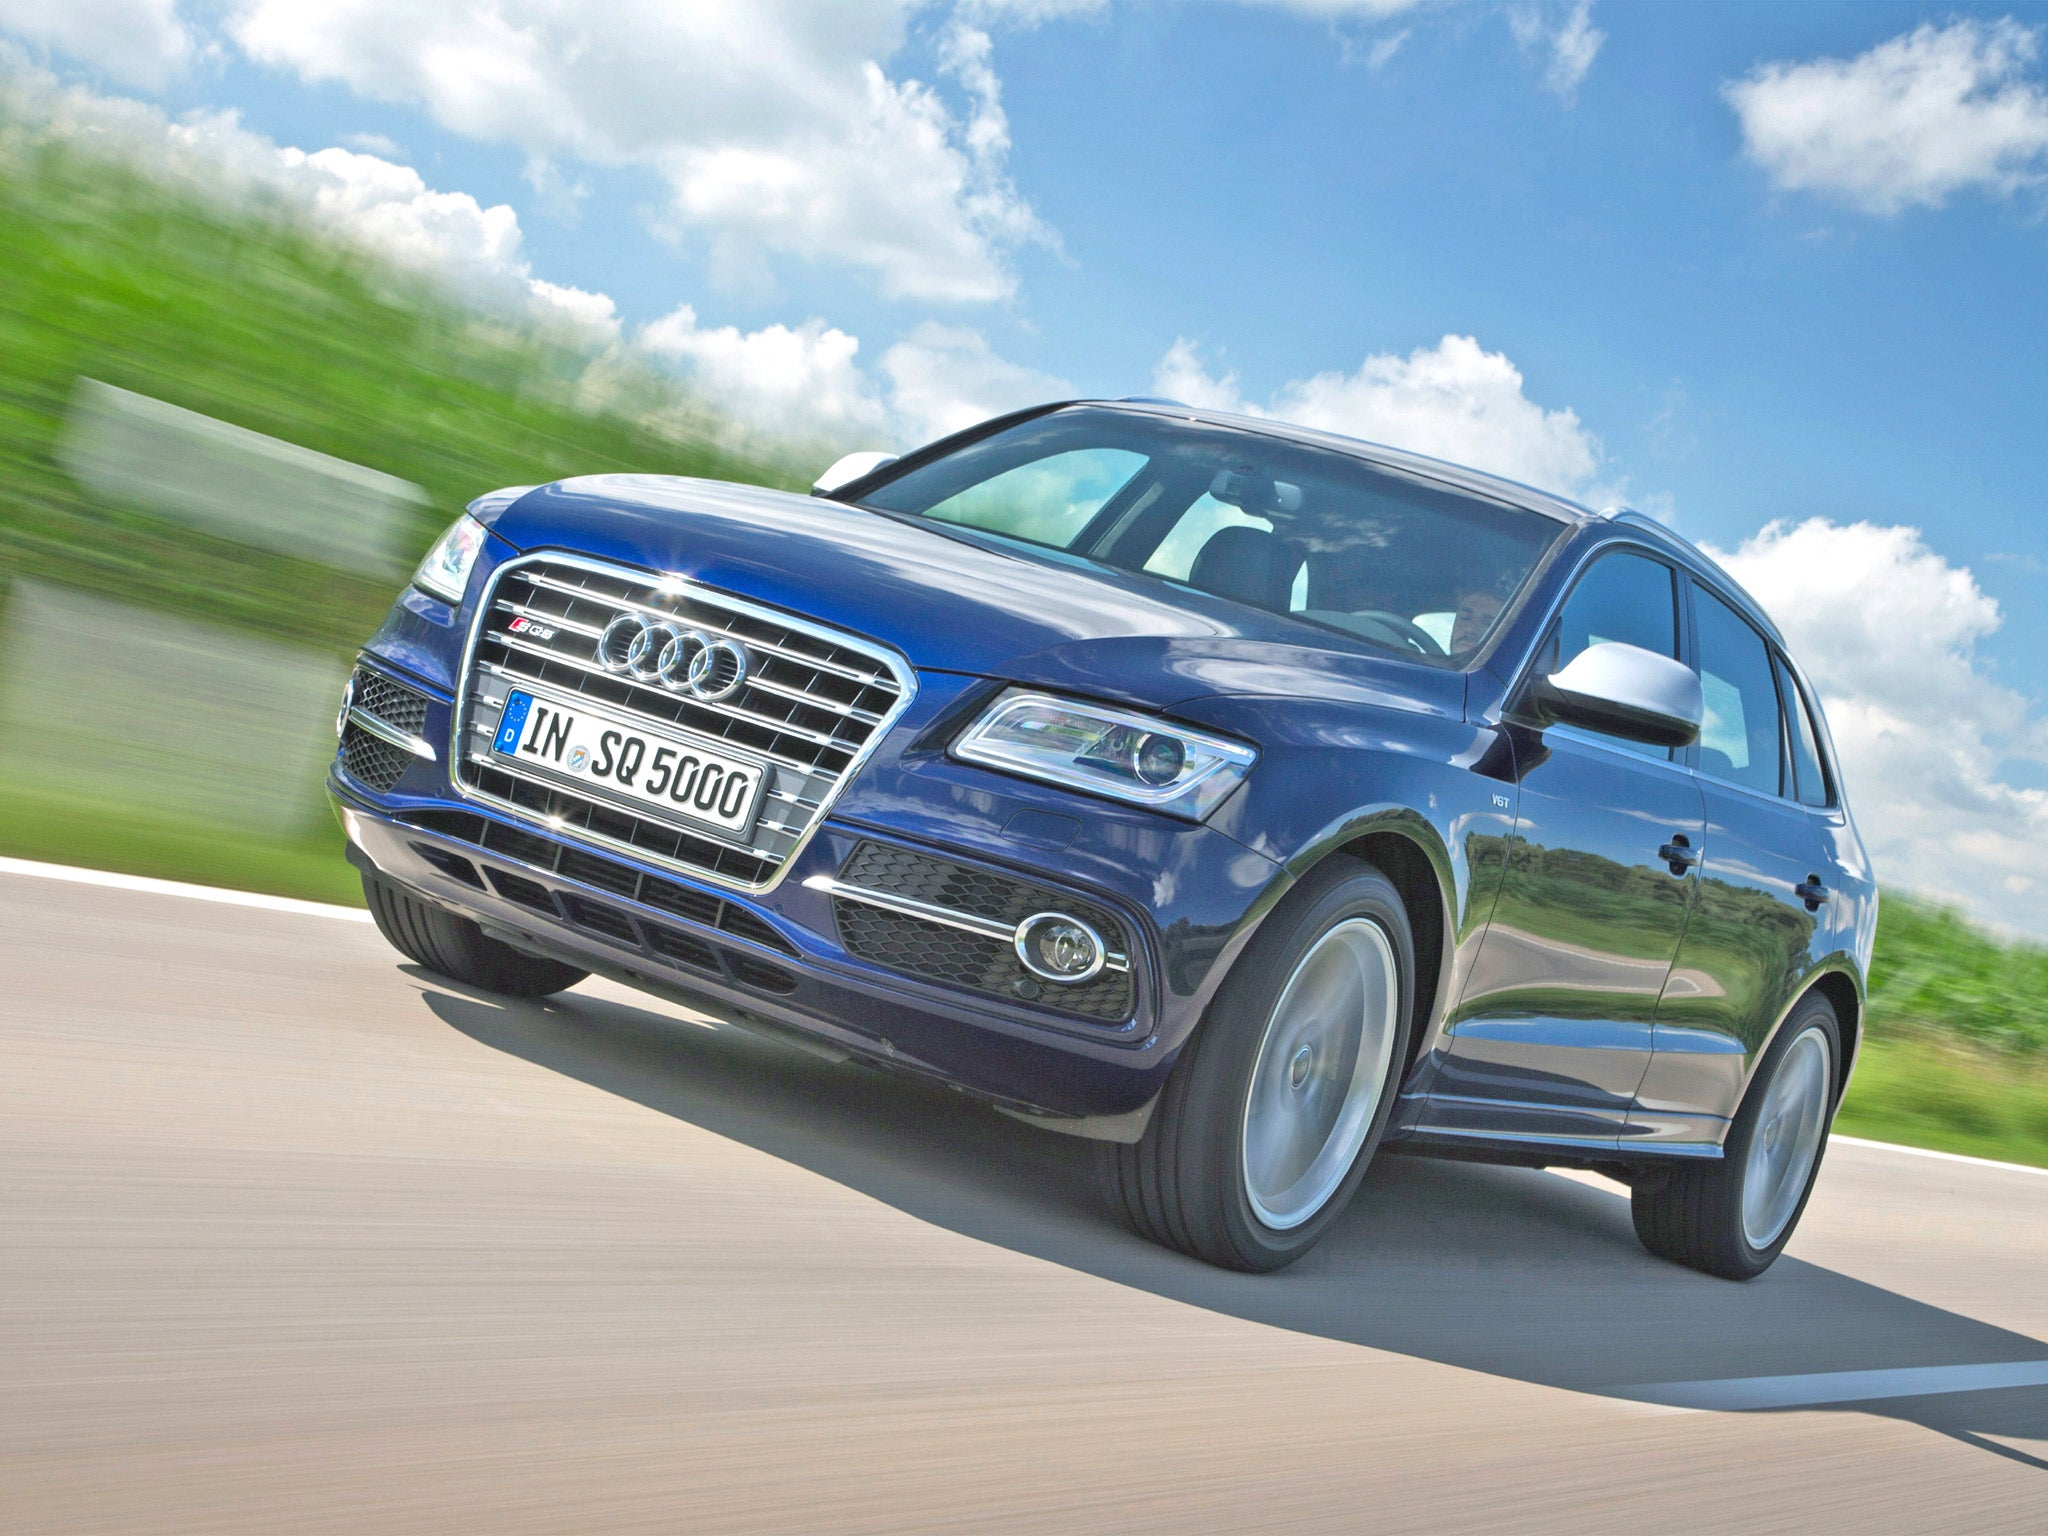 Audi sq5 motoring review it may not be flashy but this new suv is fearsomely fast the independent